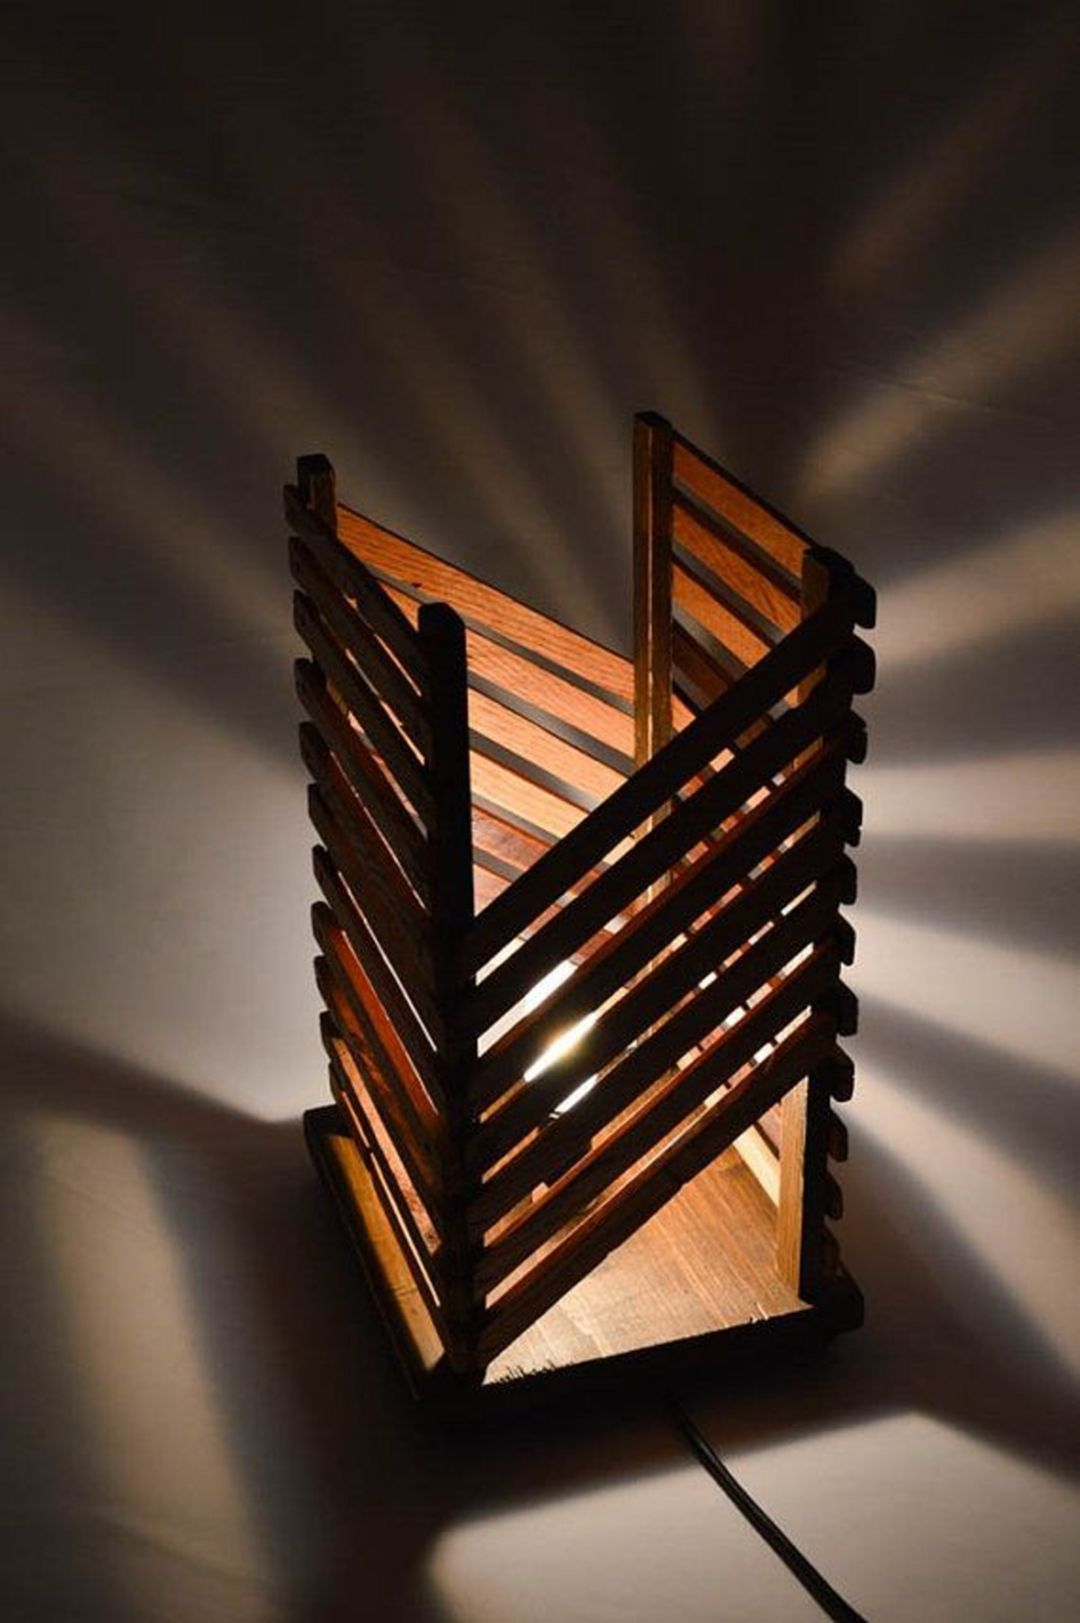 15 Incredible Wood Lamp Design Ideas For The Beauty Of Every